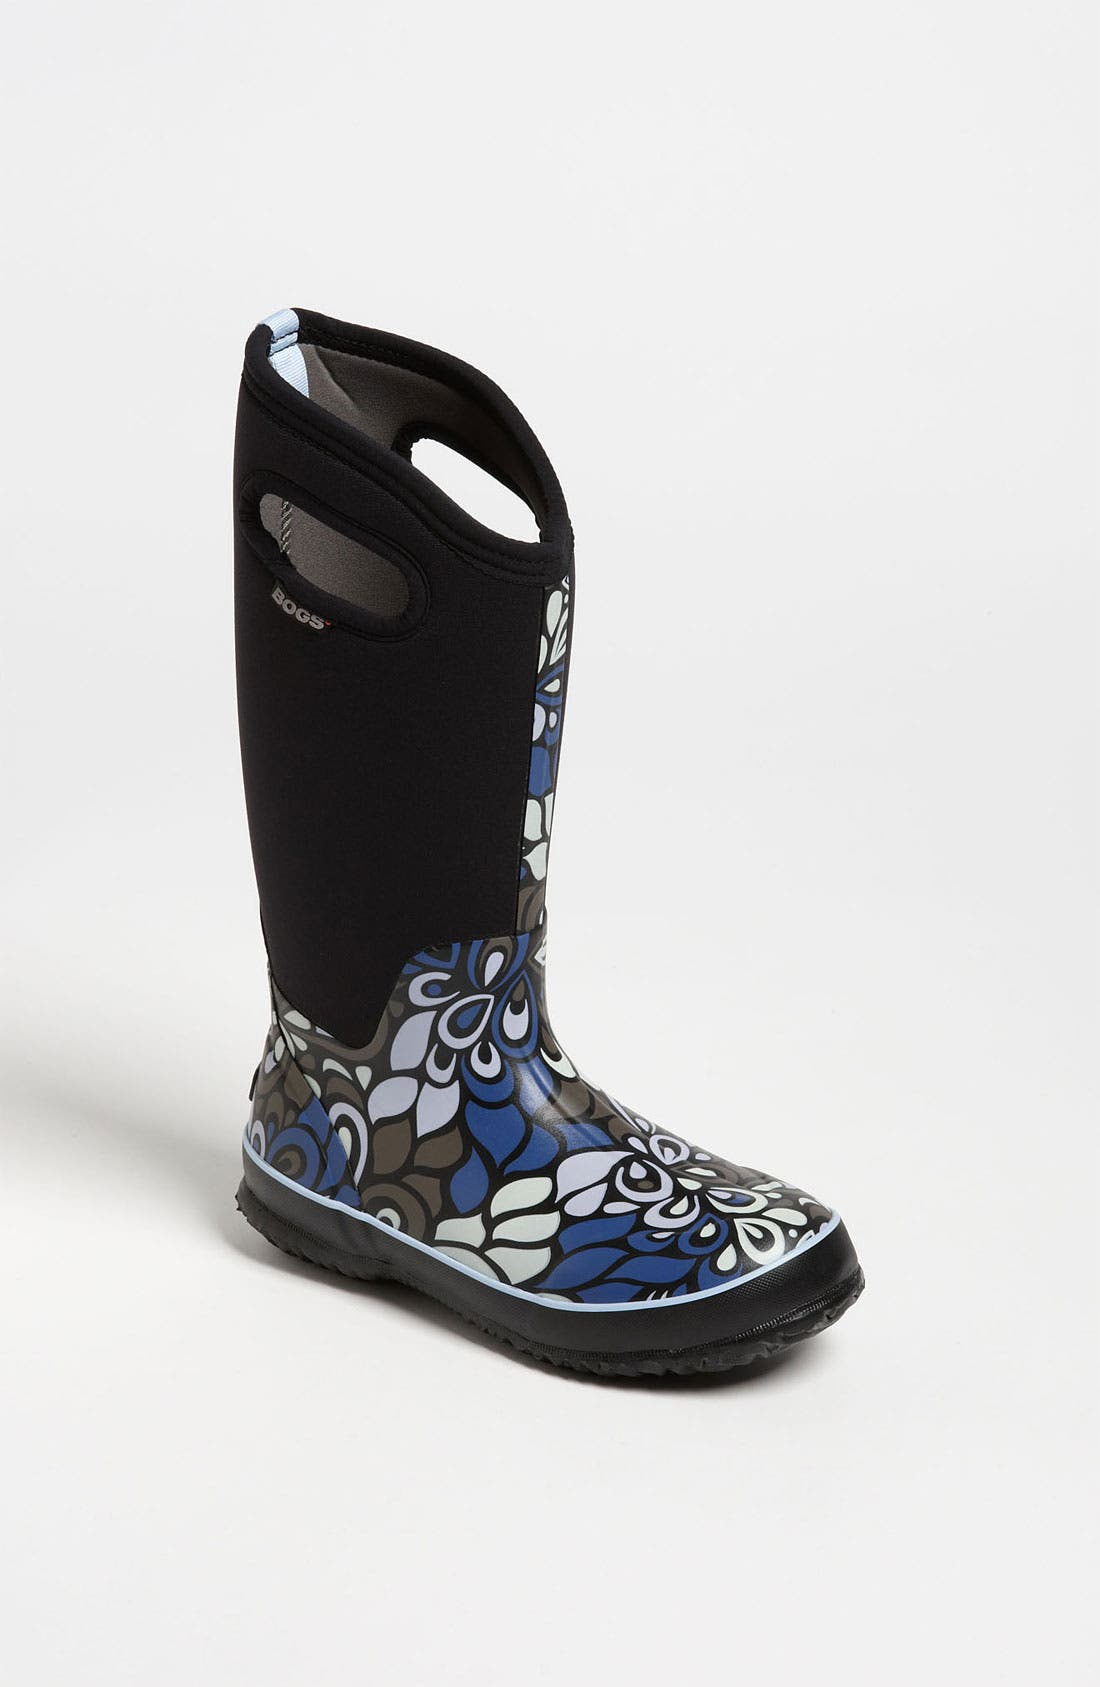 Alternate Image 1 Selected - Bogs 'Classic High Vintage' Rain Boot (Women)